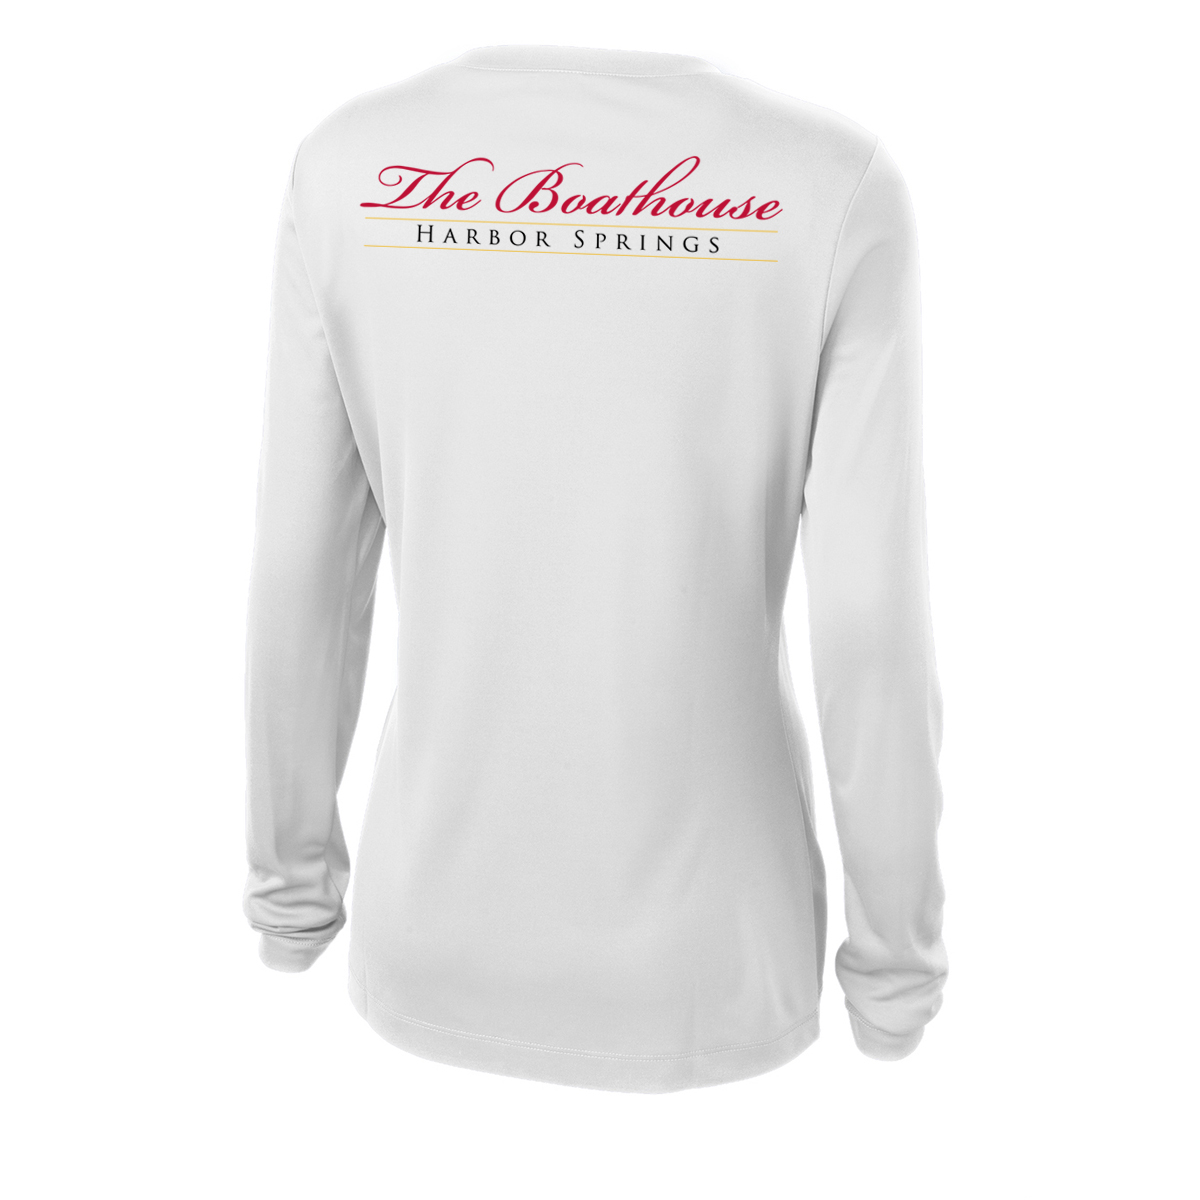 BOATHOUSE OF HARBOR SPRINGS WOMEN'S LONG SLEEVE TECH TEE